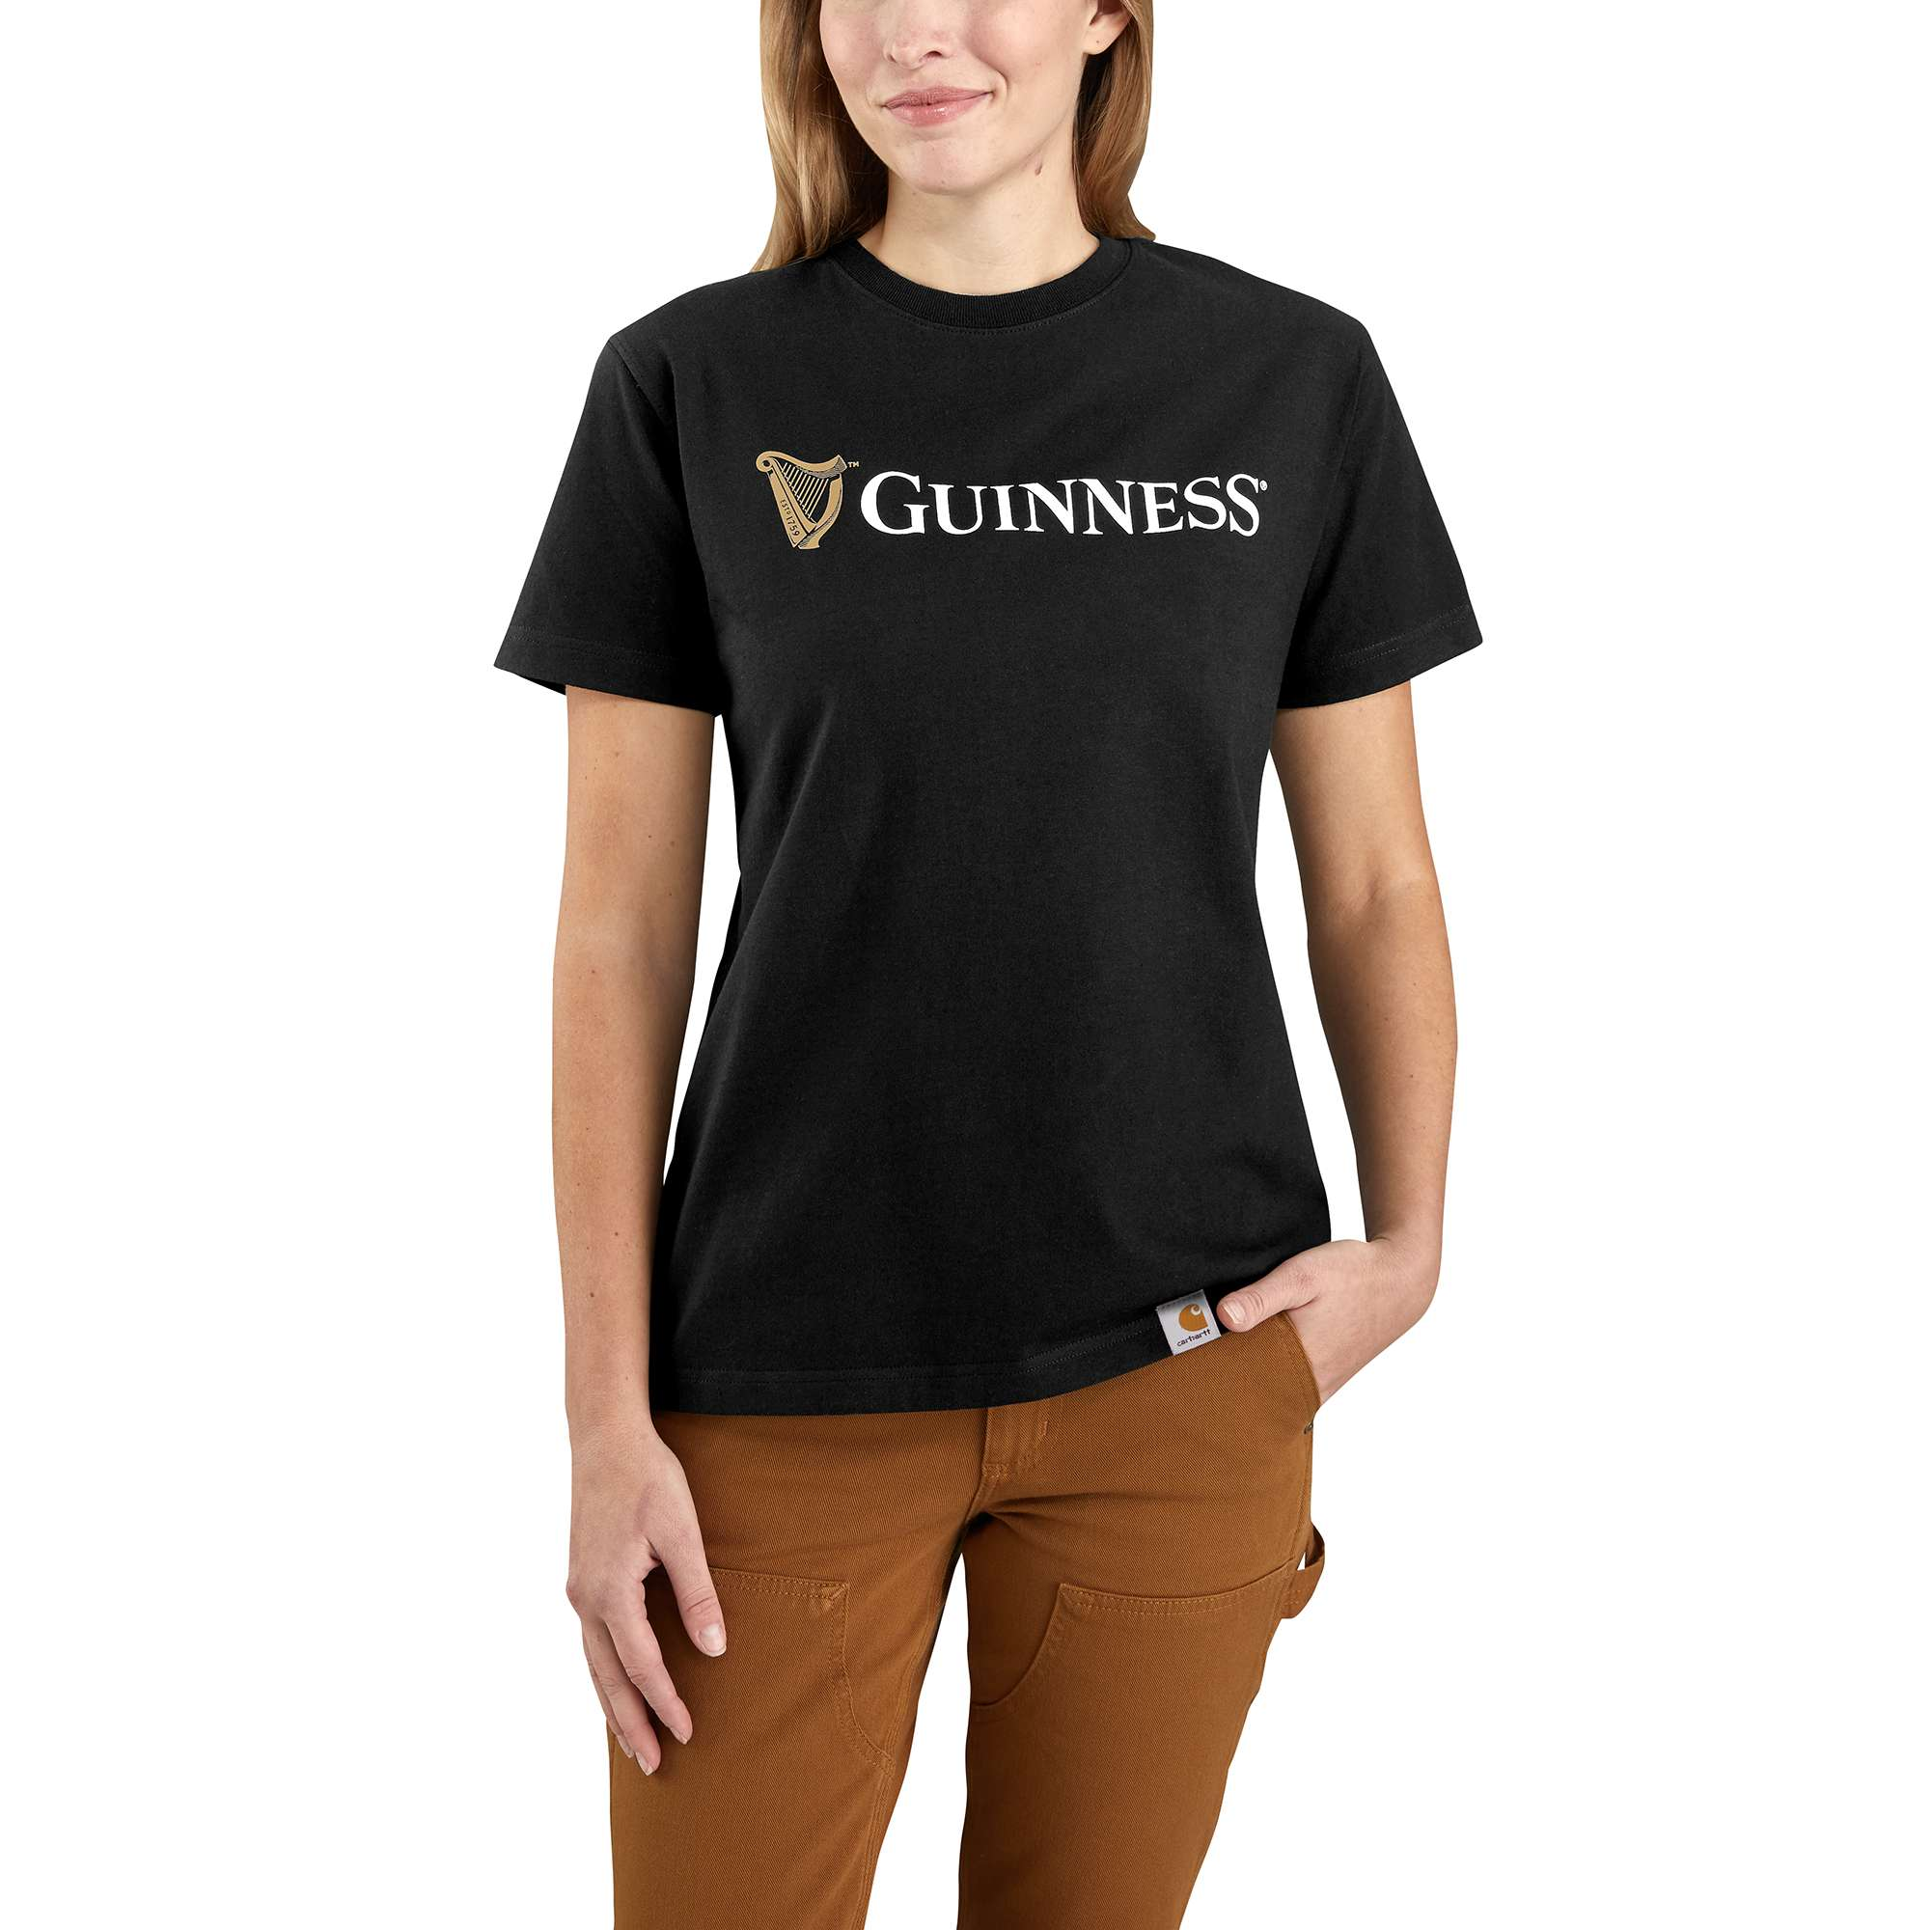 Original Fit Heavyweight Guinness Graphic Short-Sleeve T-Shirt